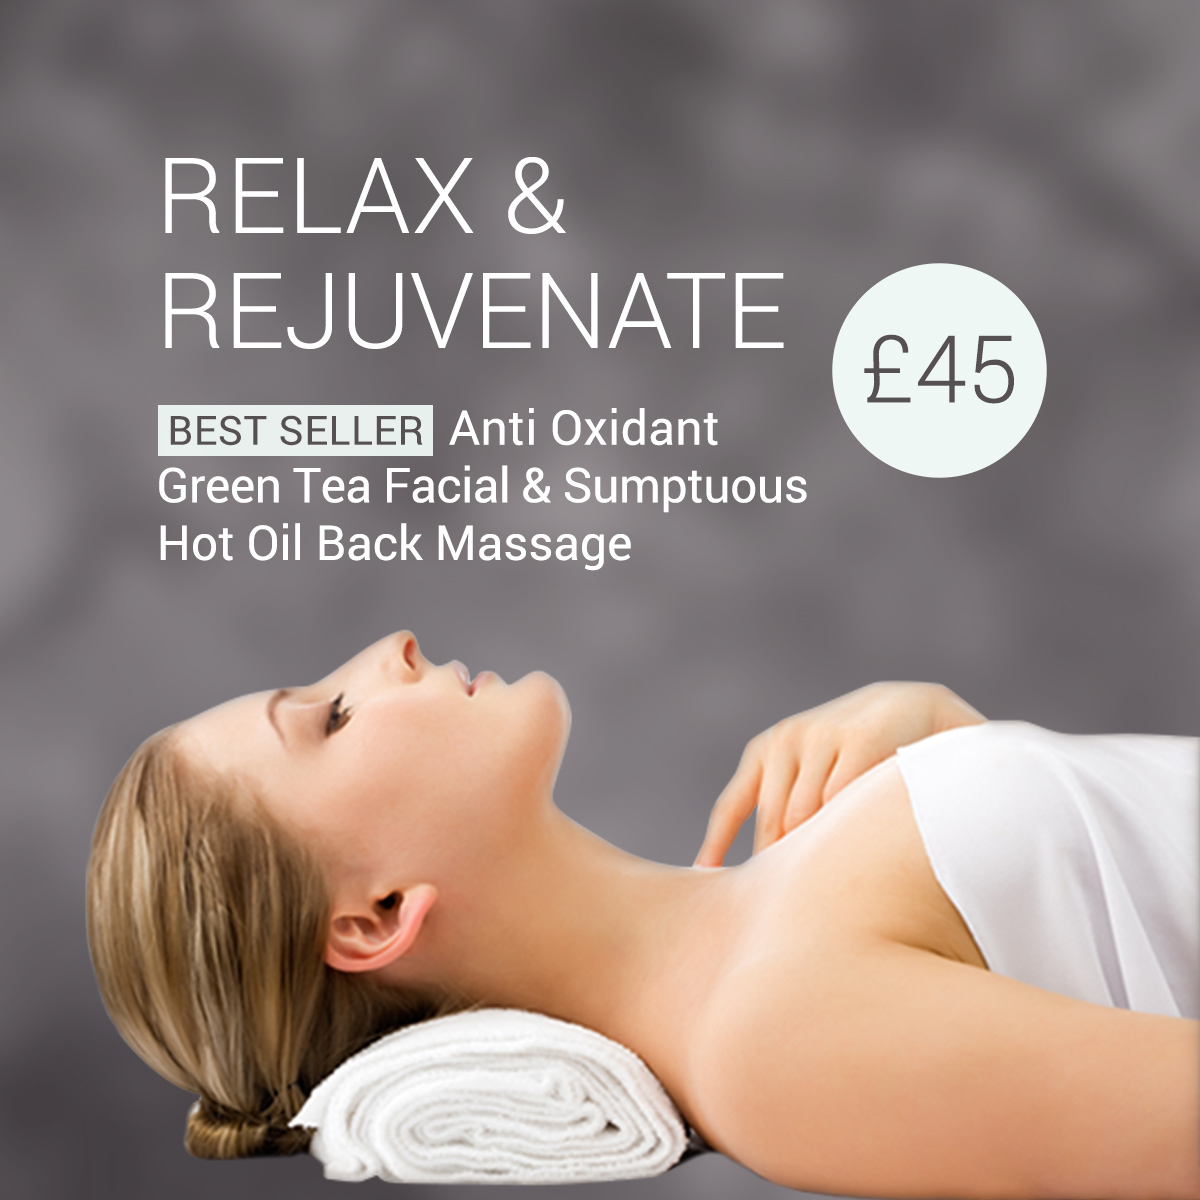 March facial and massage offers